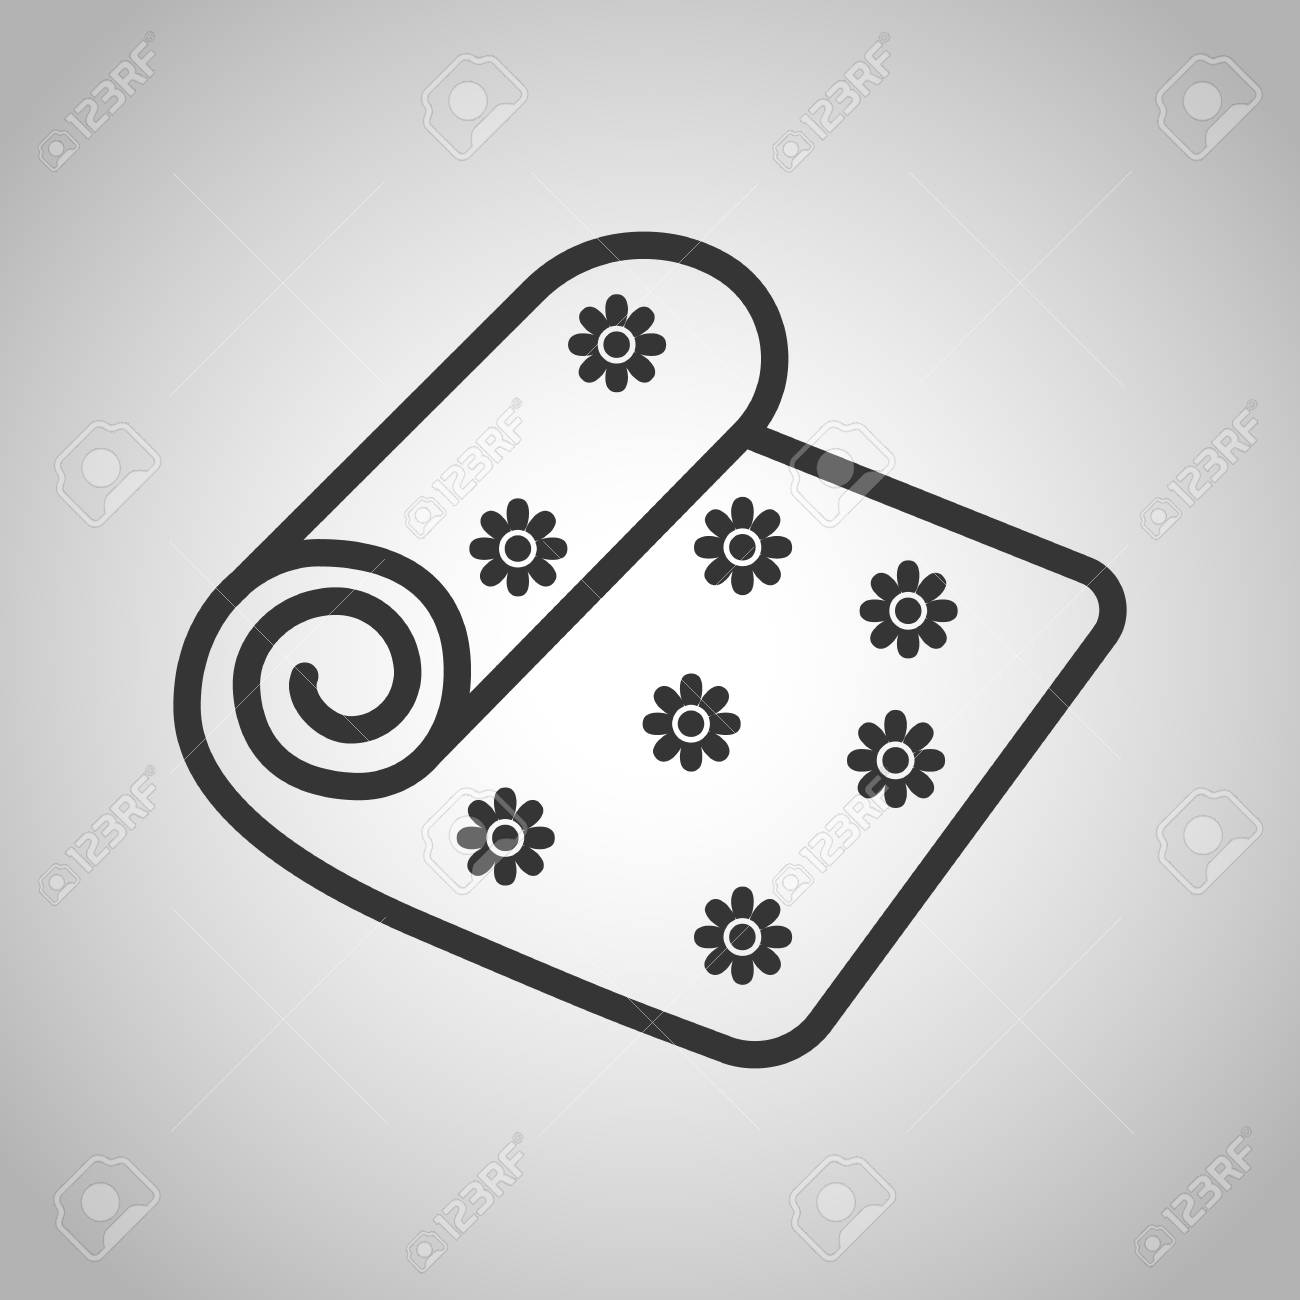 Yoga Mat Icon Royalty Free Cliparts Vectors And Stock Illustration Image 52403982